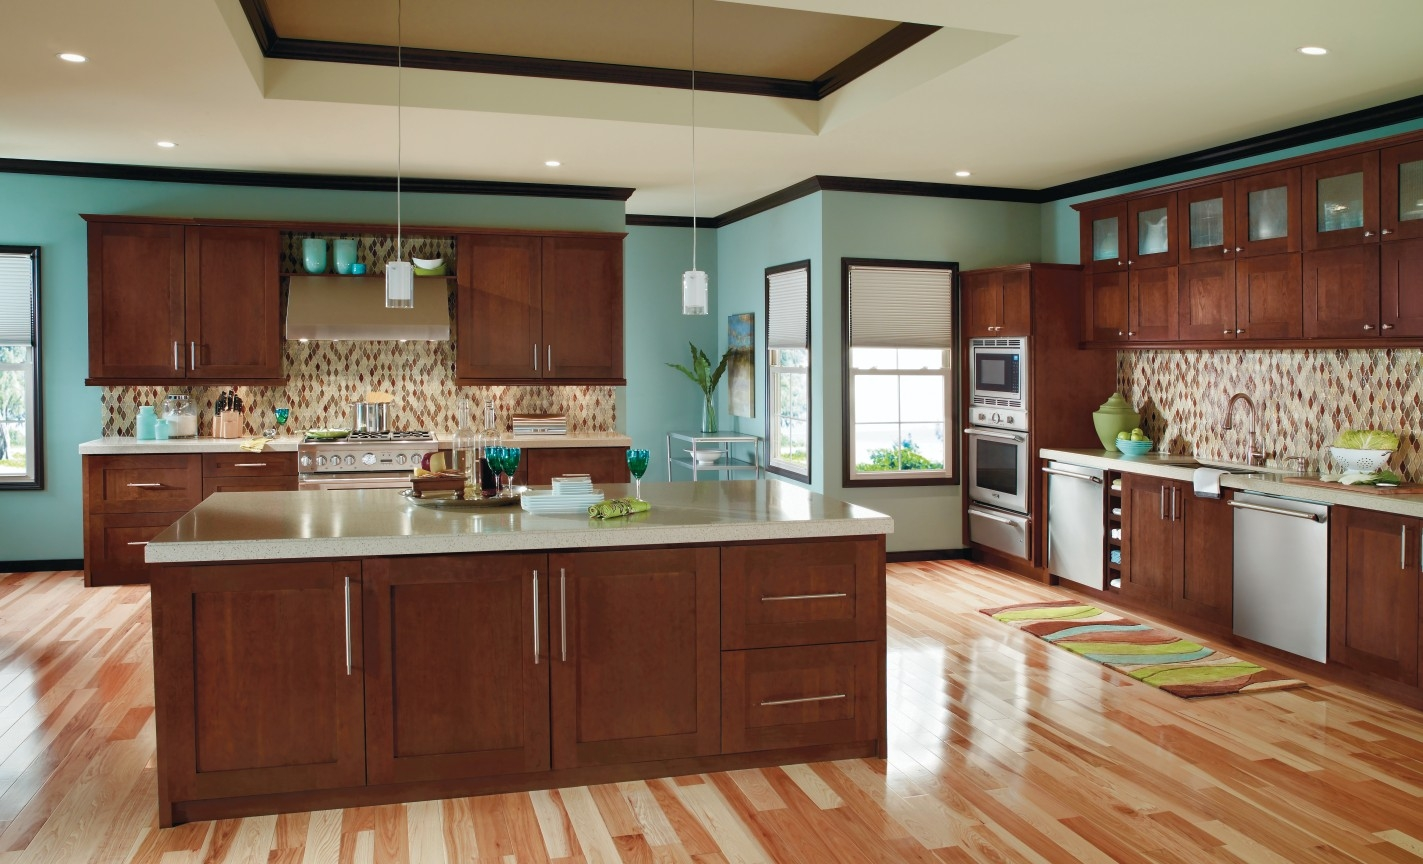 Permalink to Cherry Kitchen Cabinets Wood Floors